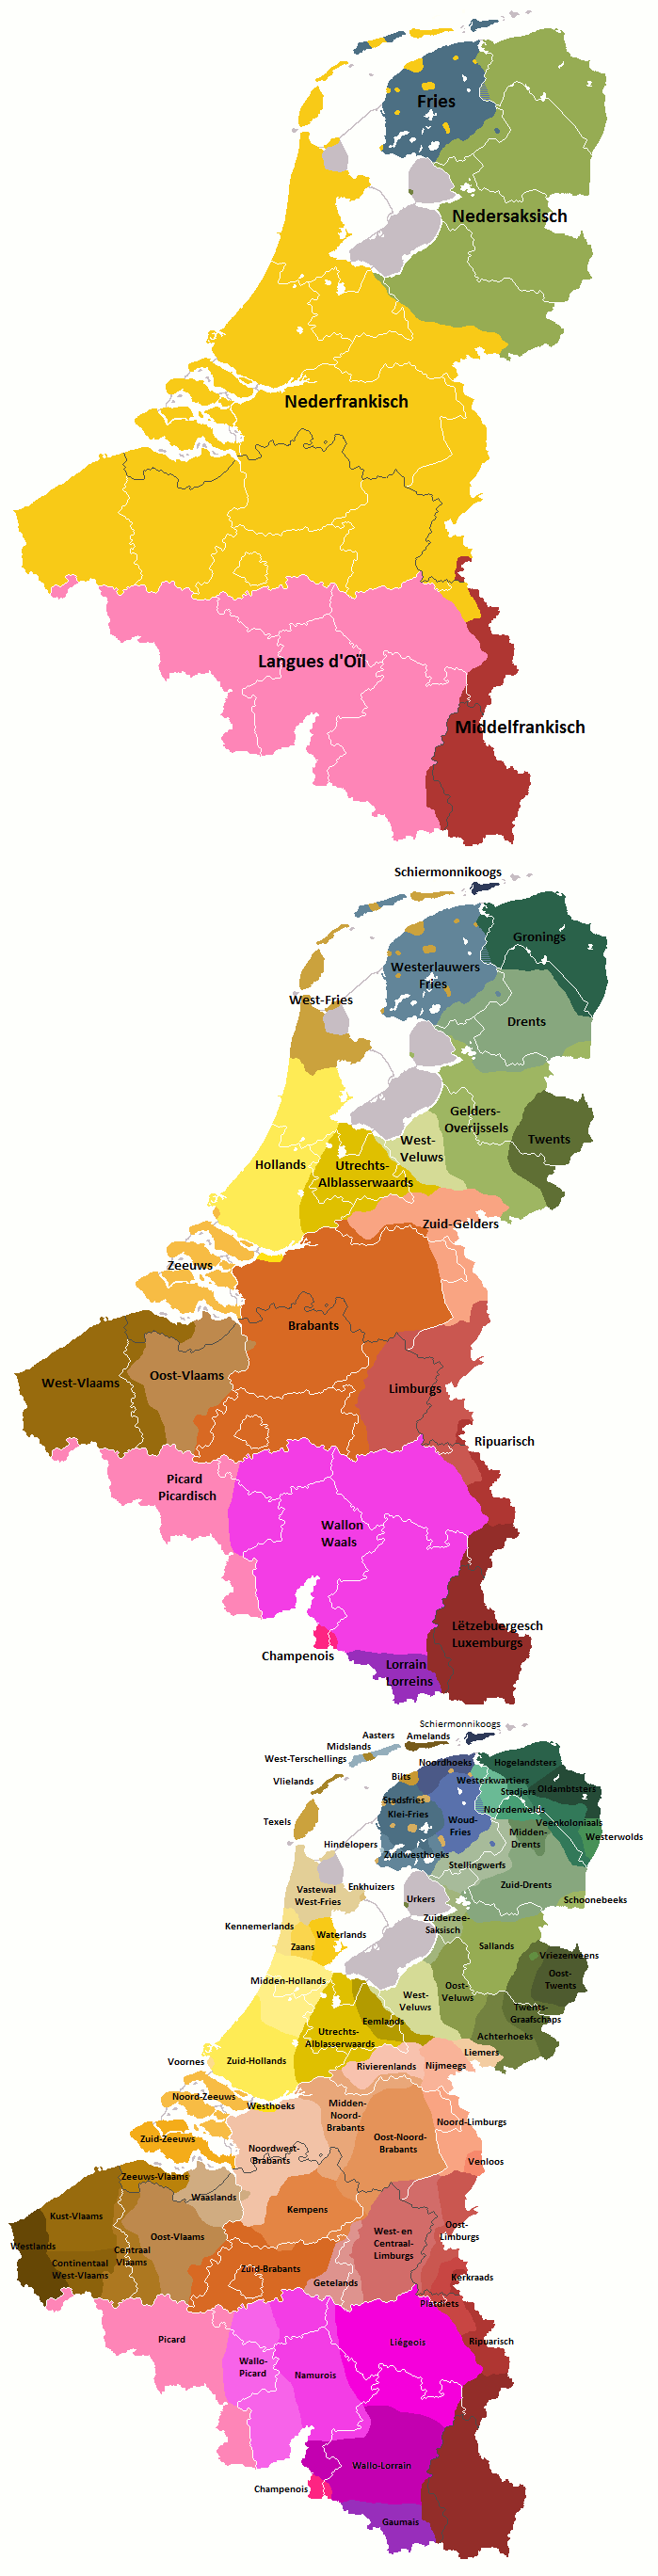 Minority languages, regional languages and dialects in the Benelux countries Languages Benelux.PNG